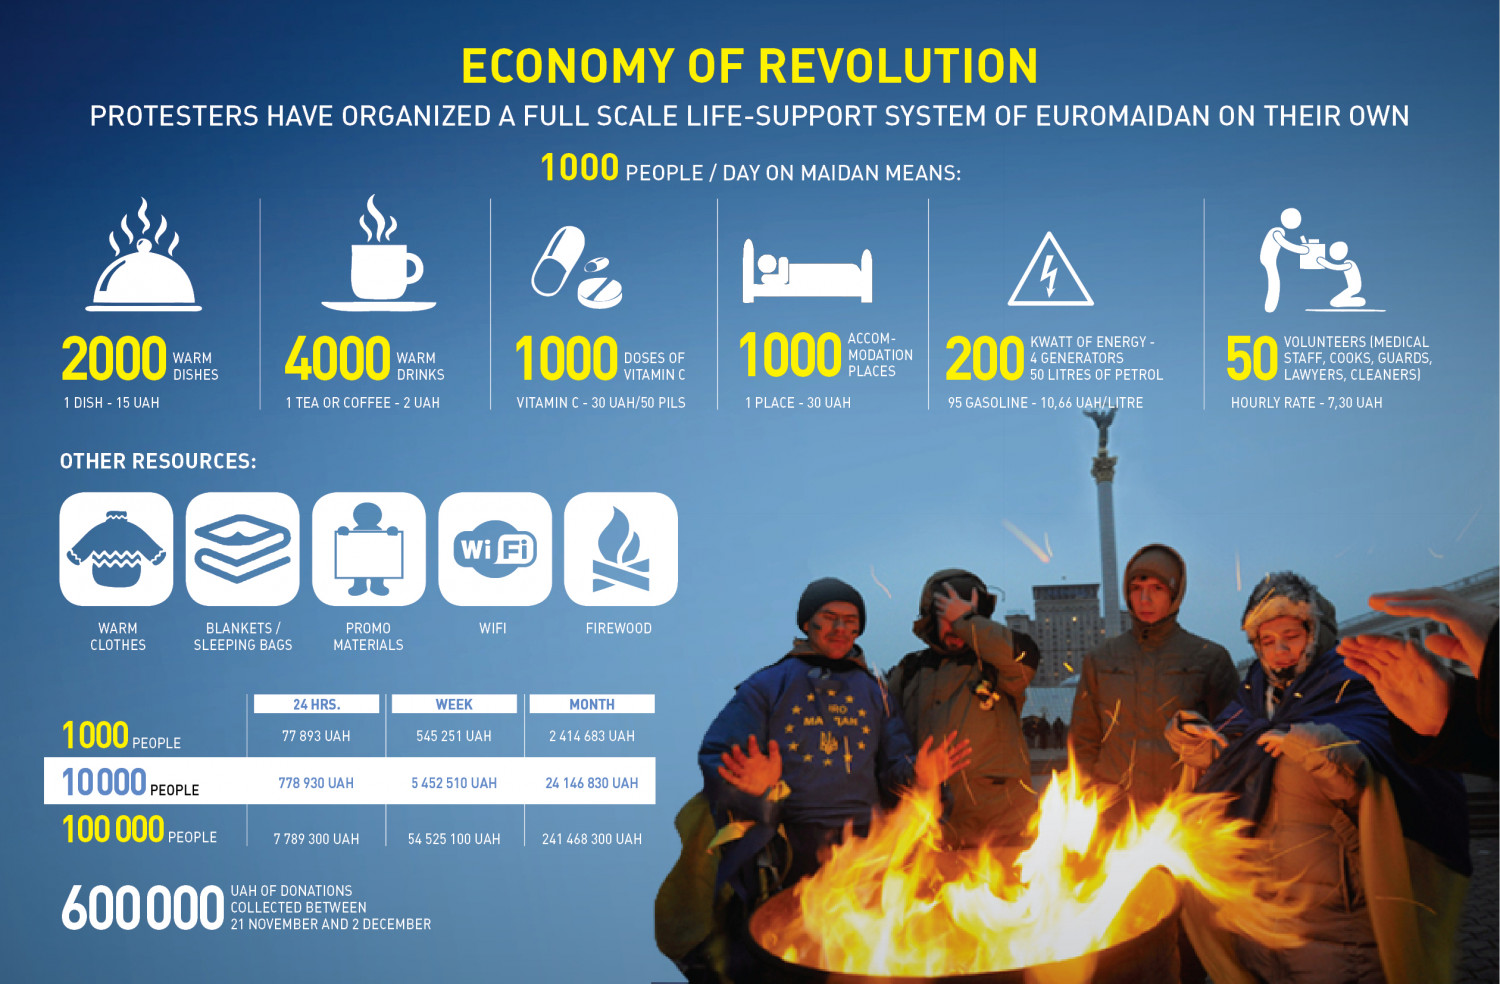 Economy of Revolution in Ukraine  Infographic